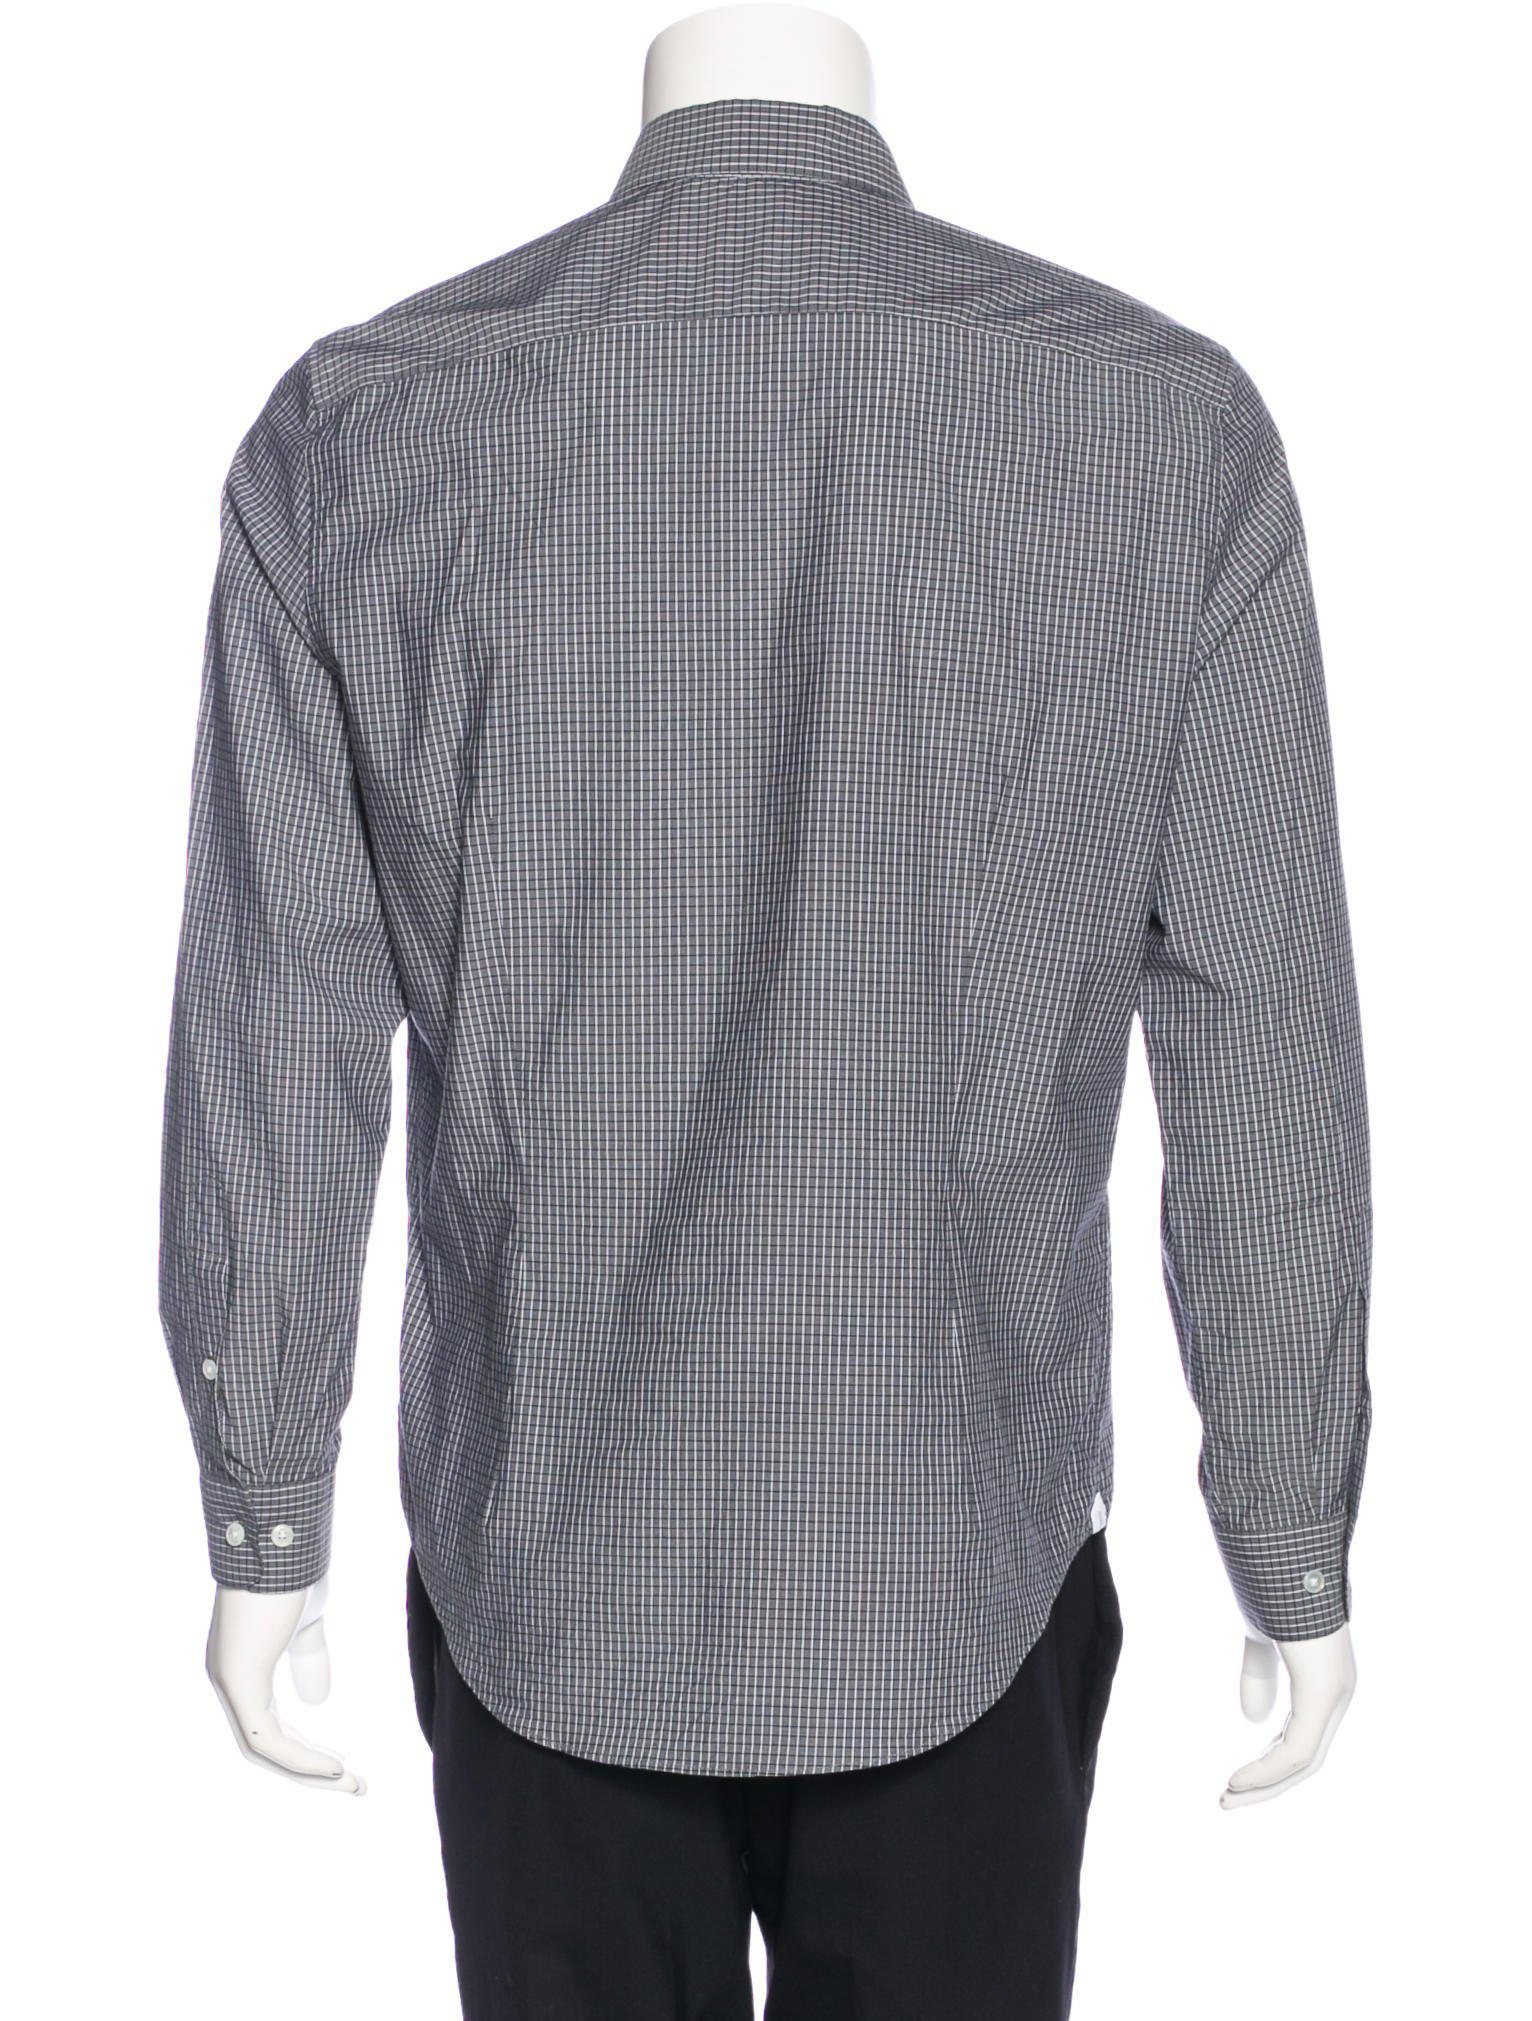 c194b2f75bc9 Lyst - Louis Vuitton Grid Check Shirt in Gray for Men